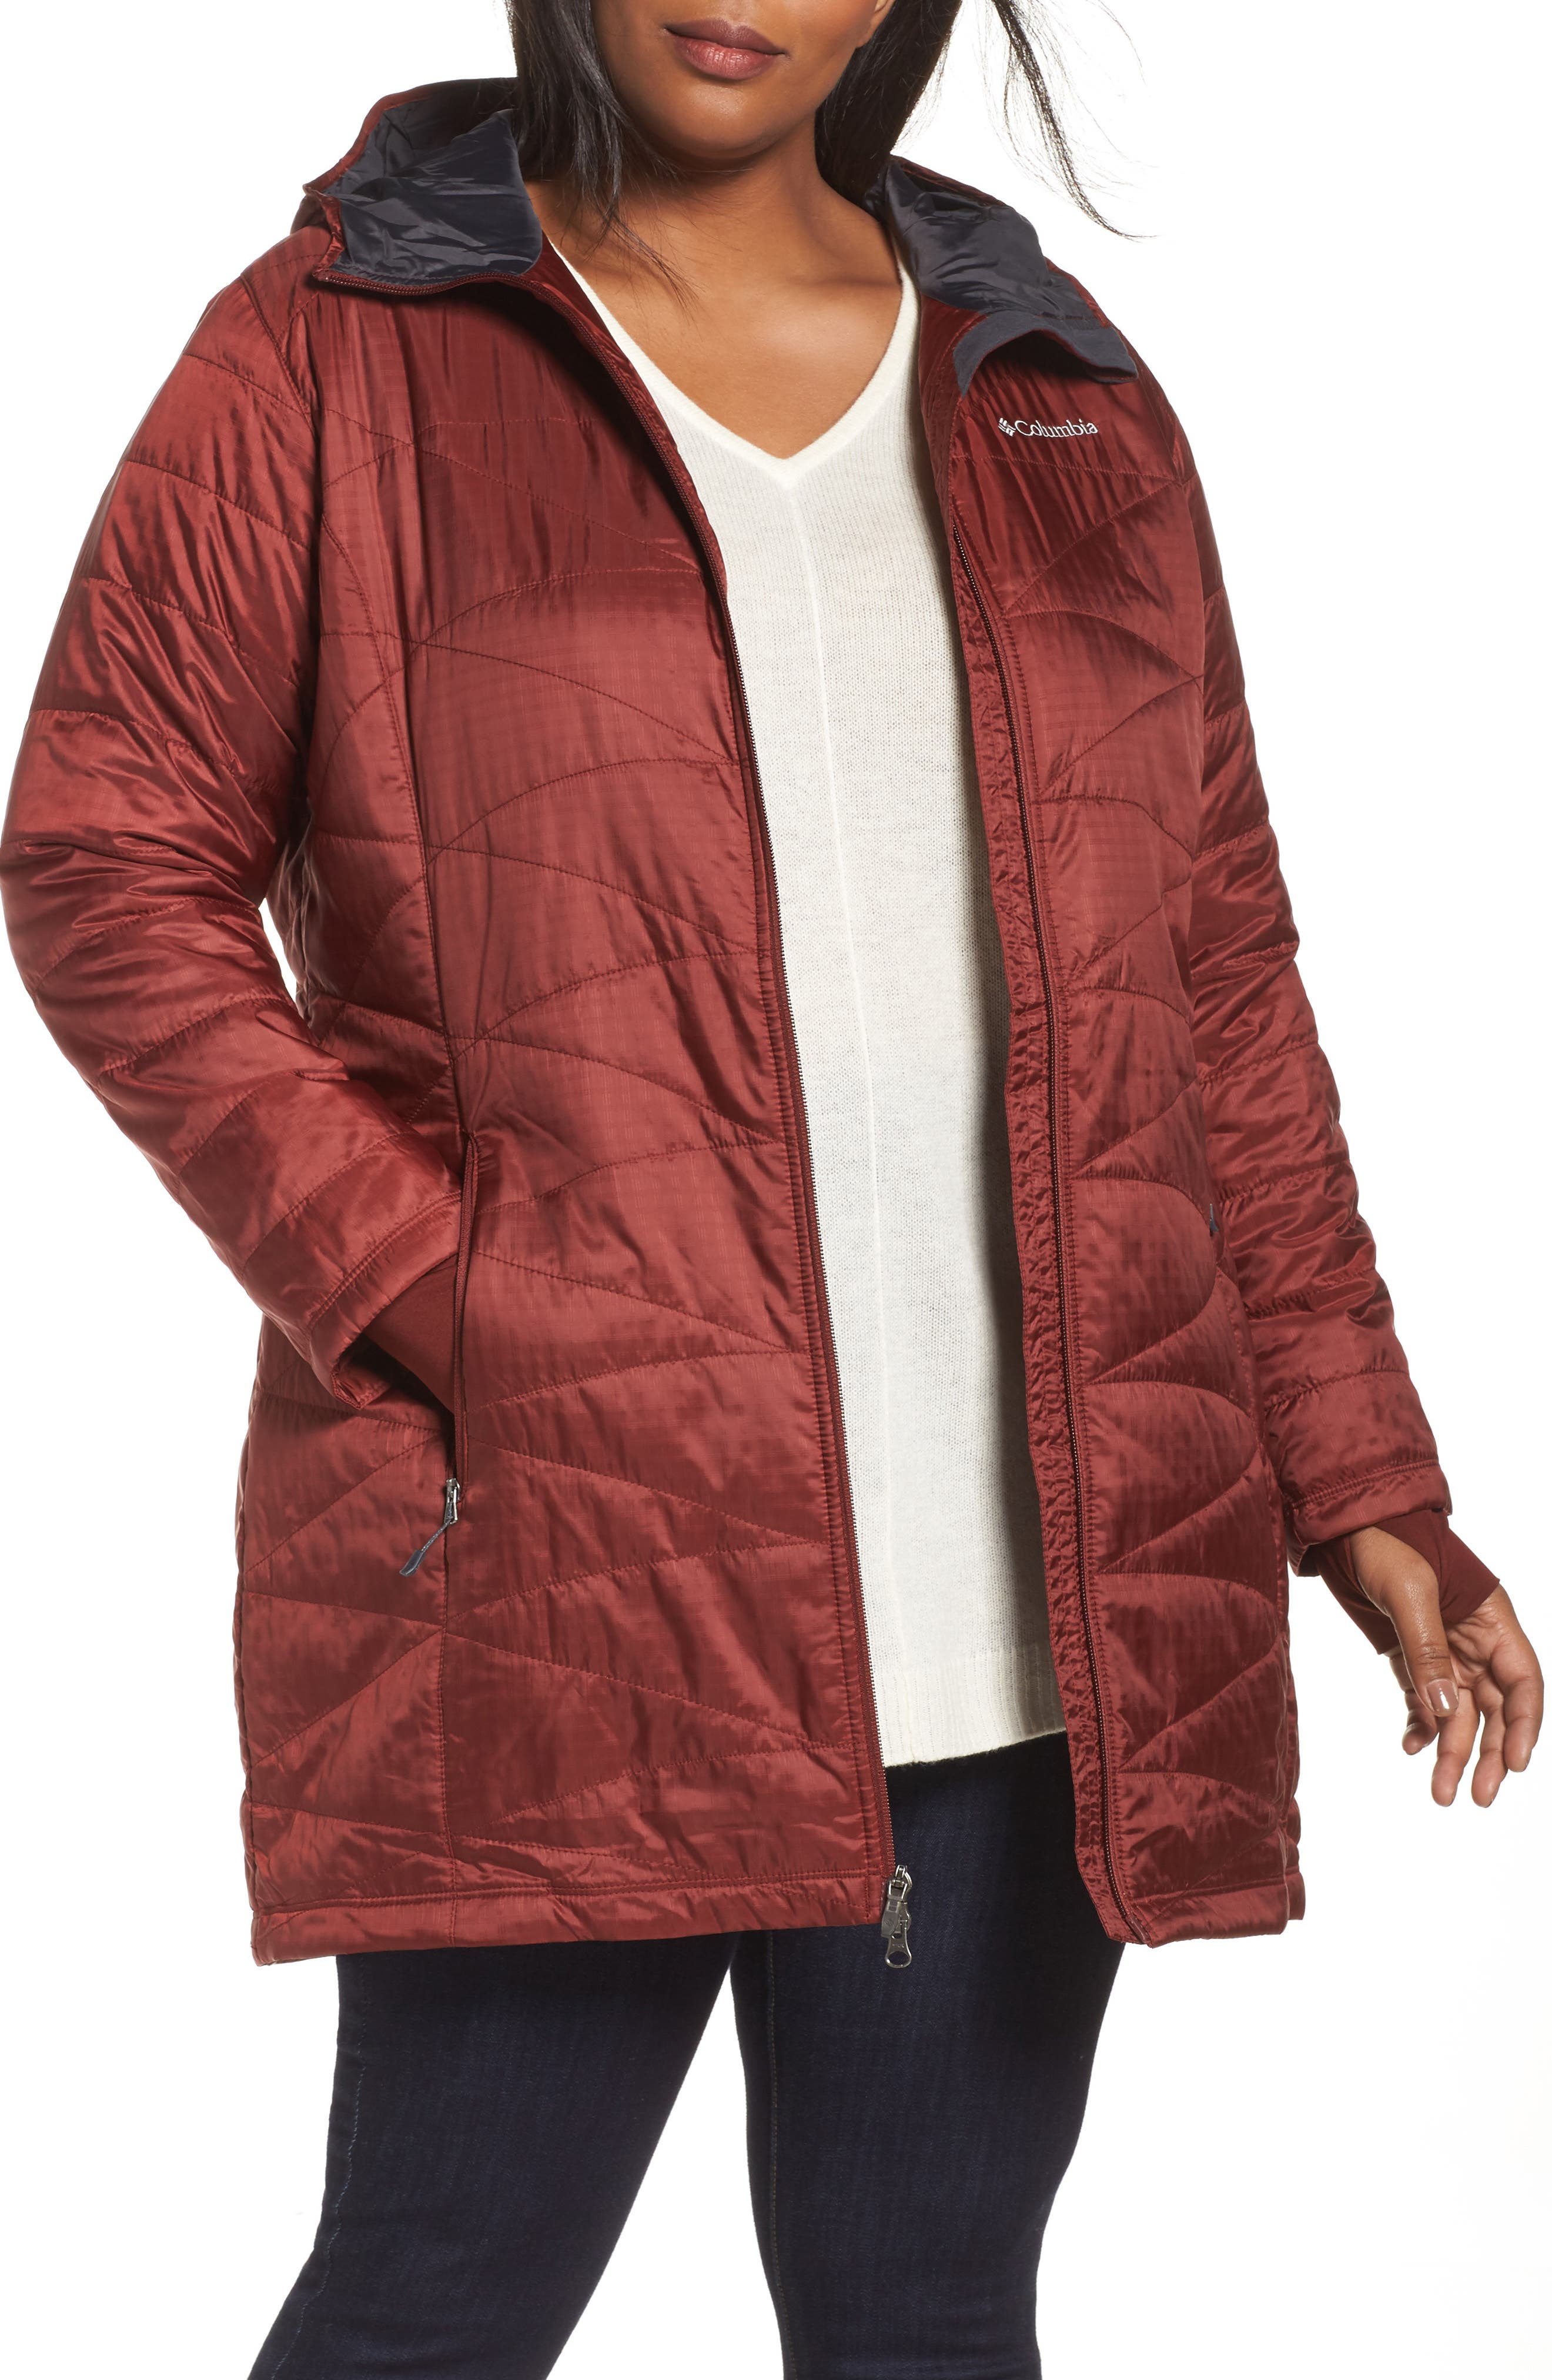 Mighty Lite Hooded Jacket,                         Main,                         color, 637